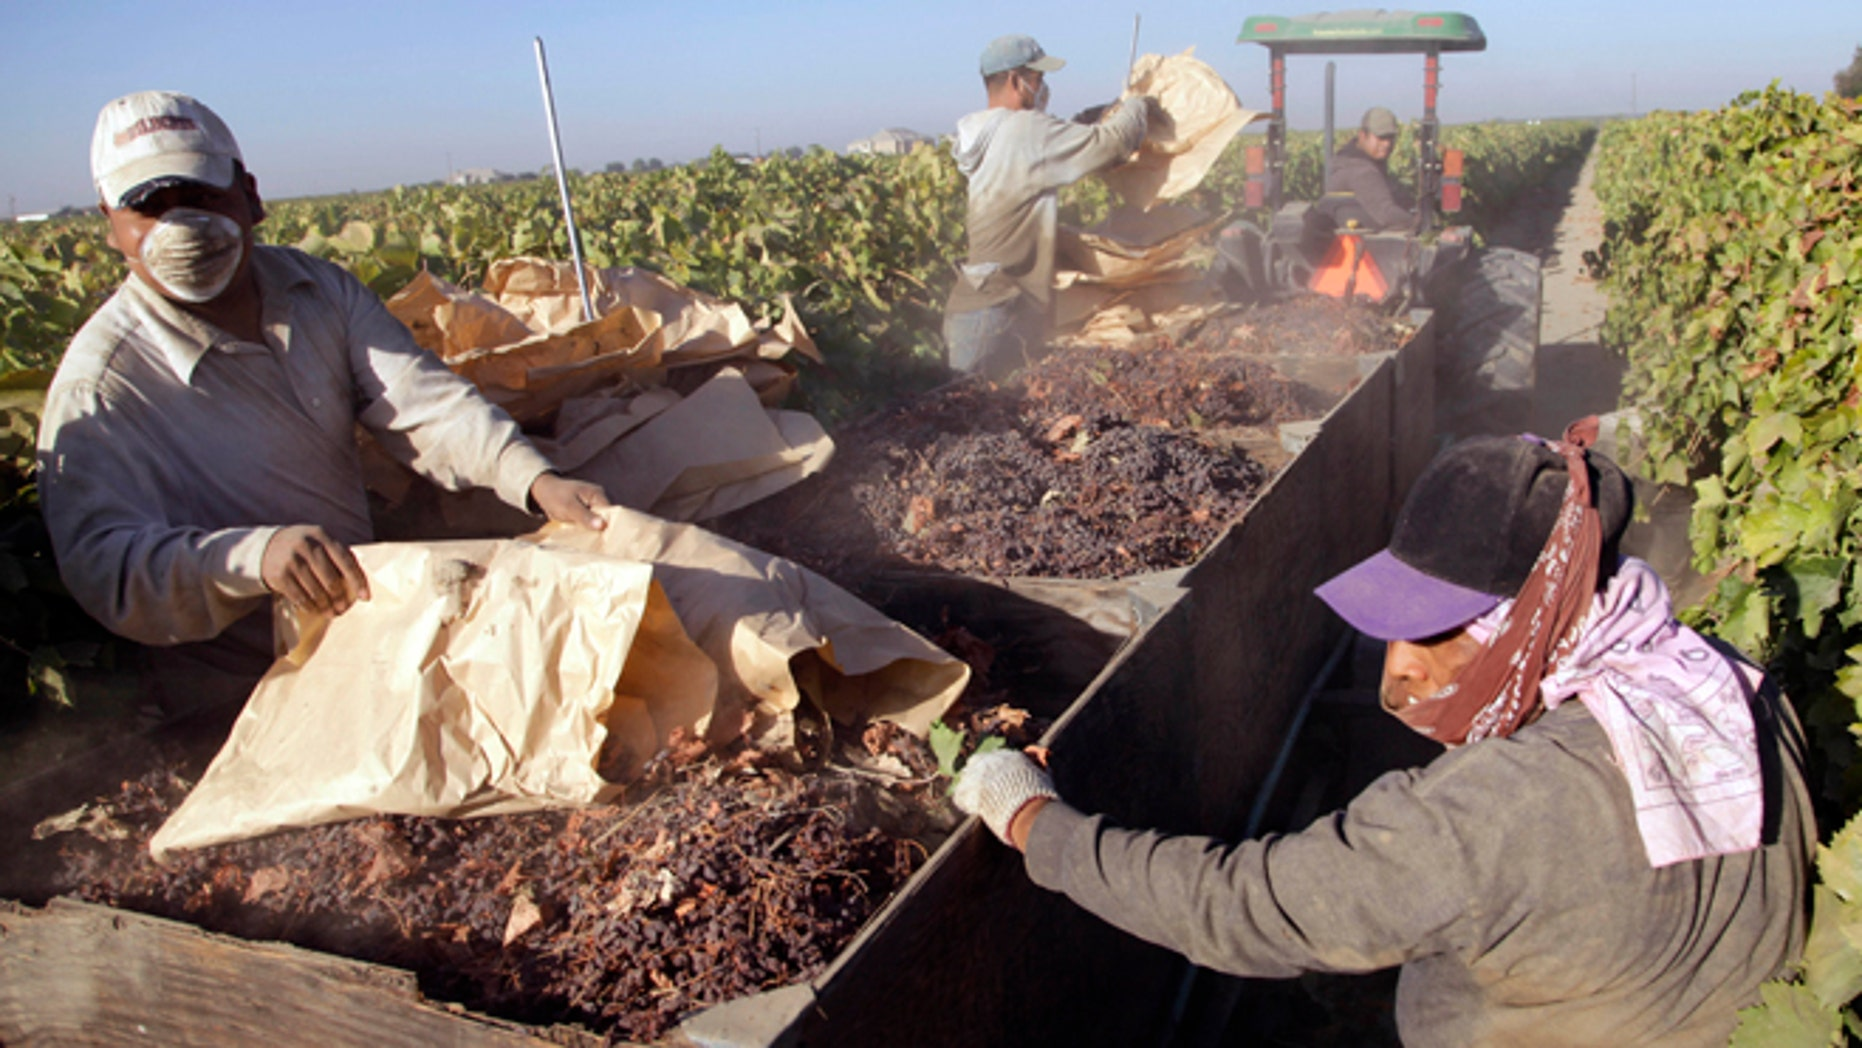 Sept. 24, 2013: In this file photo taken near Fresno, Calif., farmworkers pick paper trays of dried raisins off the ground and heap them onto a trailer in the final step of raisin harvest. Thousands of farmworkers in California, the nations leading grower of fruits, vegetables and nuts may soon be able to leave the uncertainty of their seasonal jobs for steady, year-around work building homes, cooking in restaurants and cleaning hotel rooms.